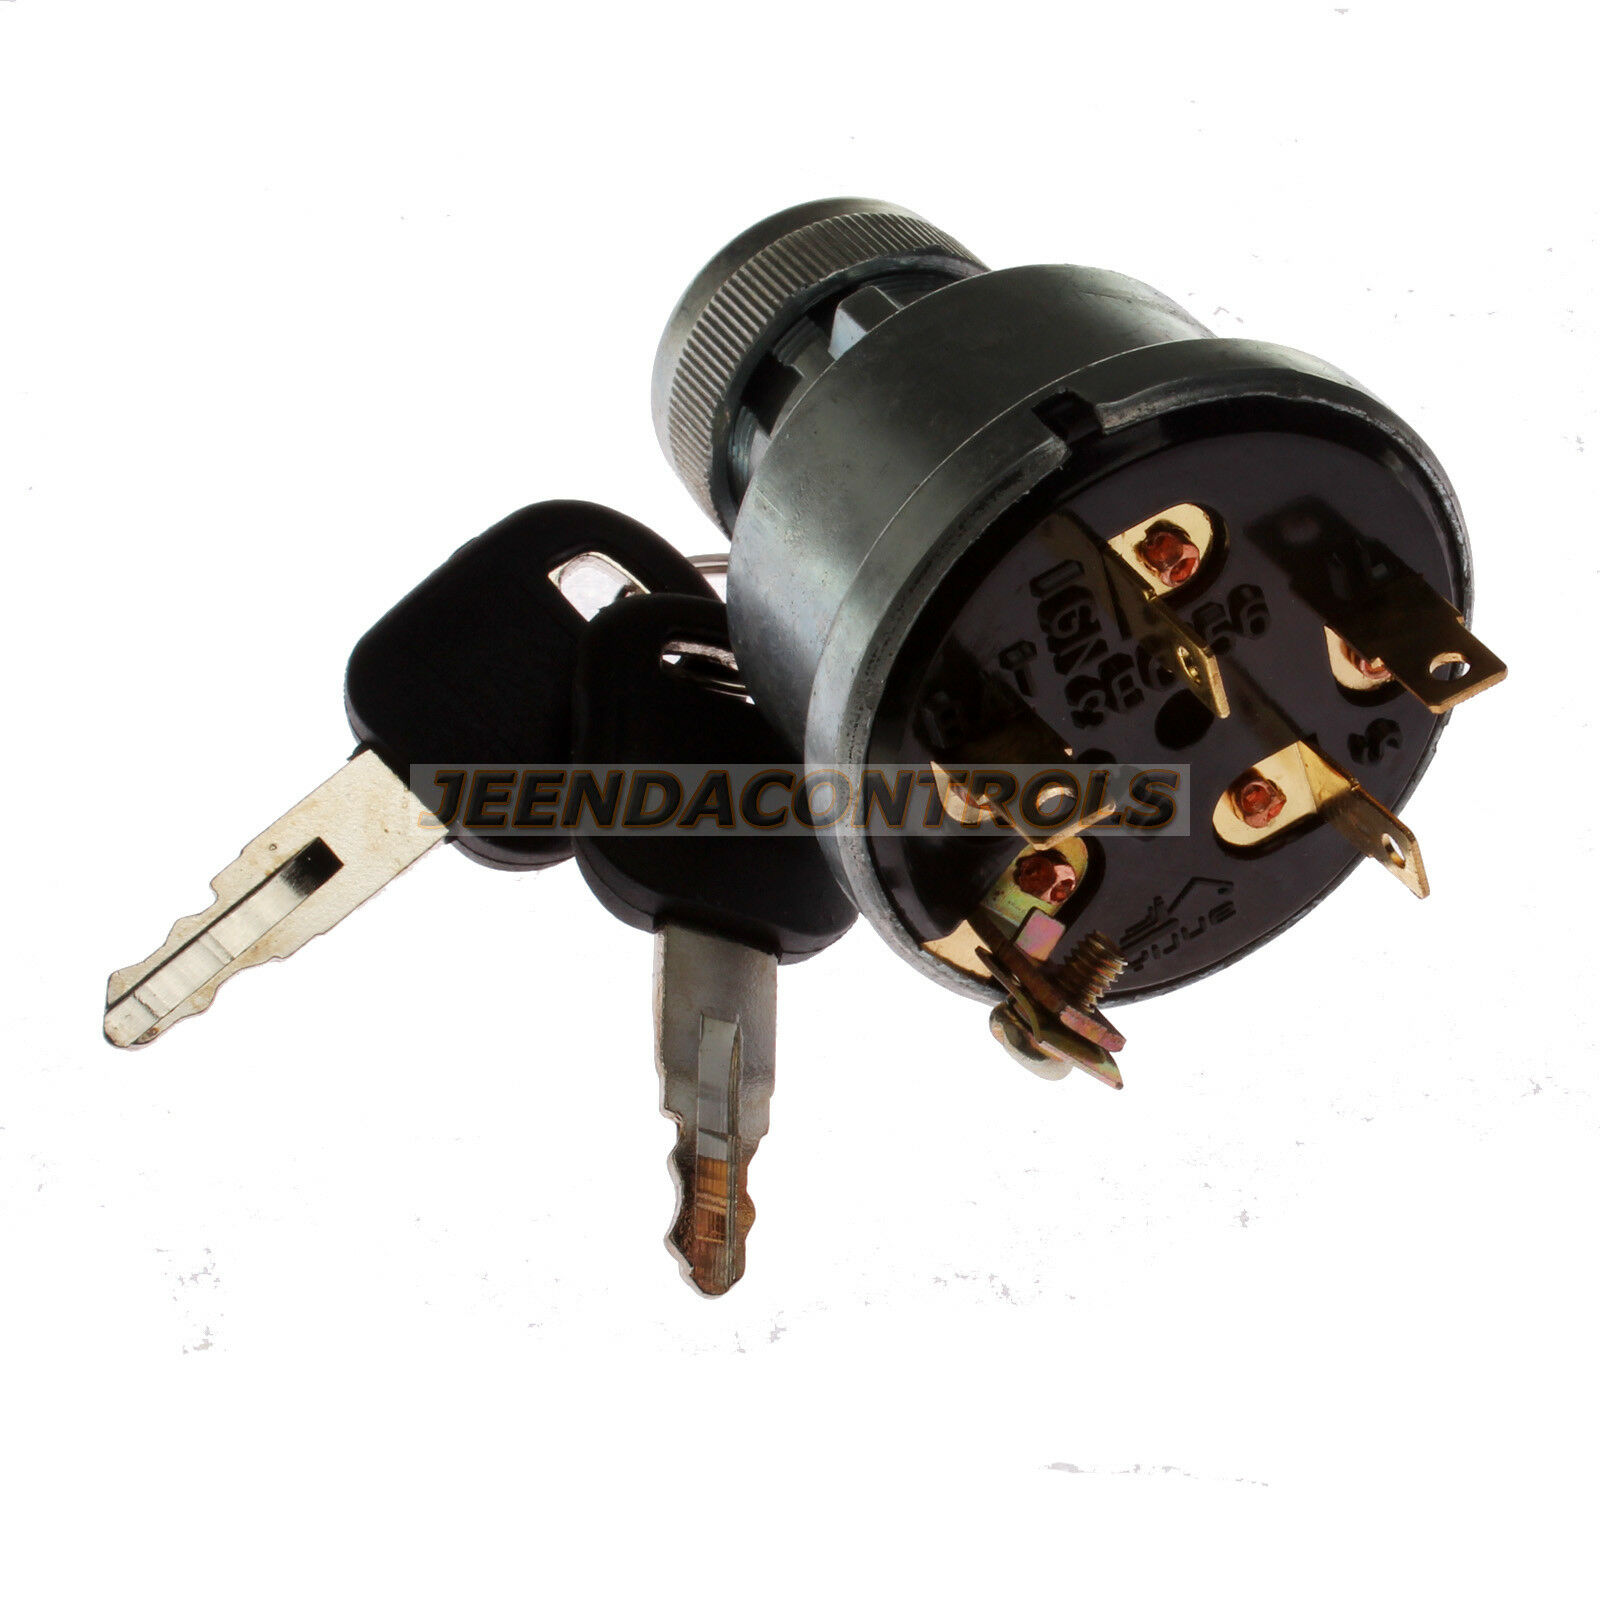 5 Terminal Wire Ignition Starter Switch 3E-0156 W/2 Keys For CATERPILLAR  3306 1 of 4FREE Shipping See More